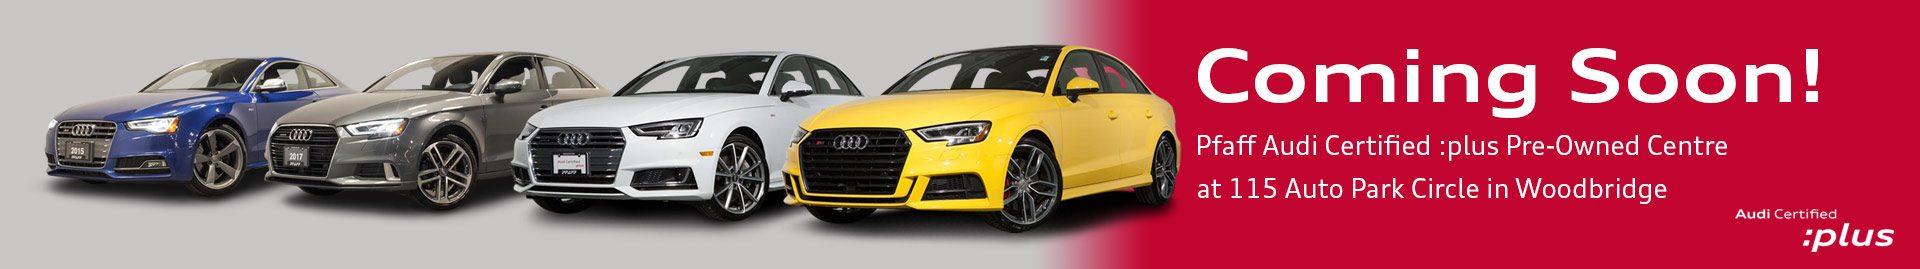 Pfaff Audi Pre-Owned Pricing